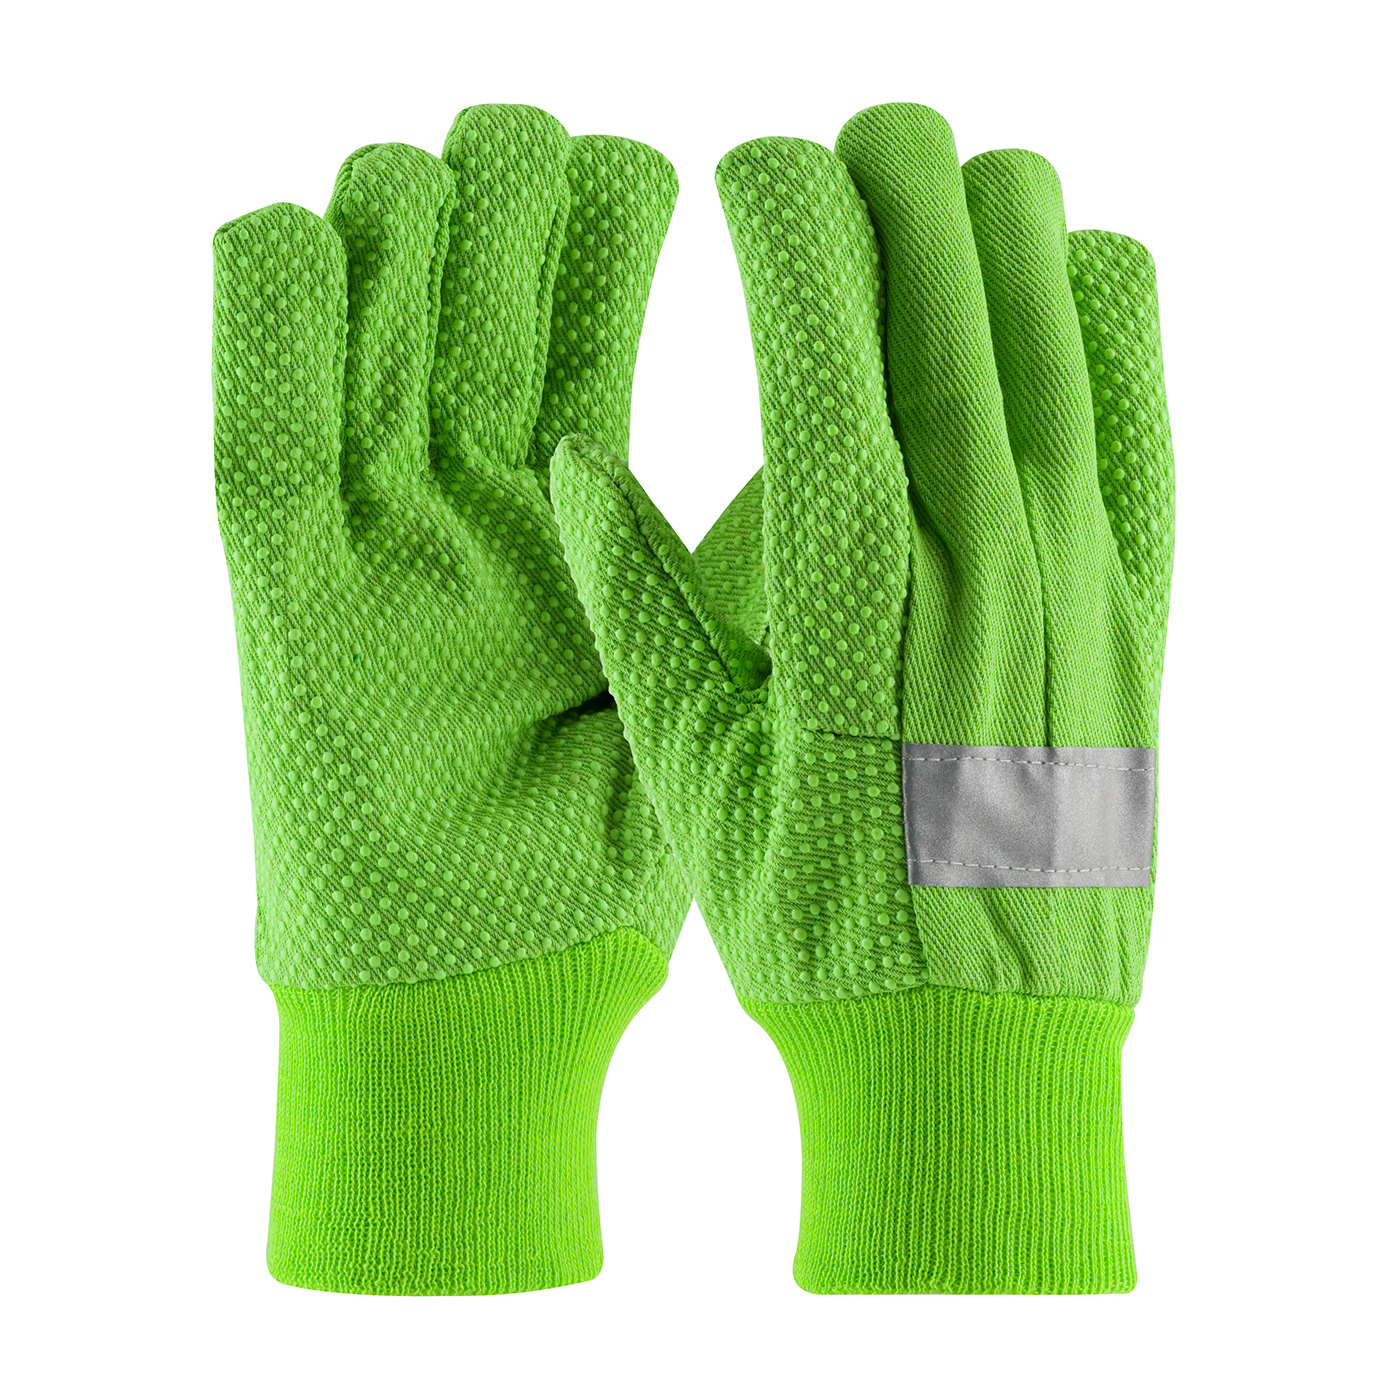 PIP® Hi-Vis Premium Grade Cotton Canvas Glove with PVC Dot Grip on Palm, Thumb and Forefinger - 10 oz  #91-910PDL-R